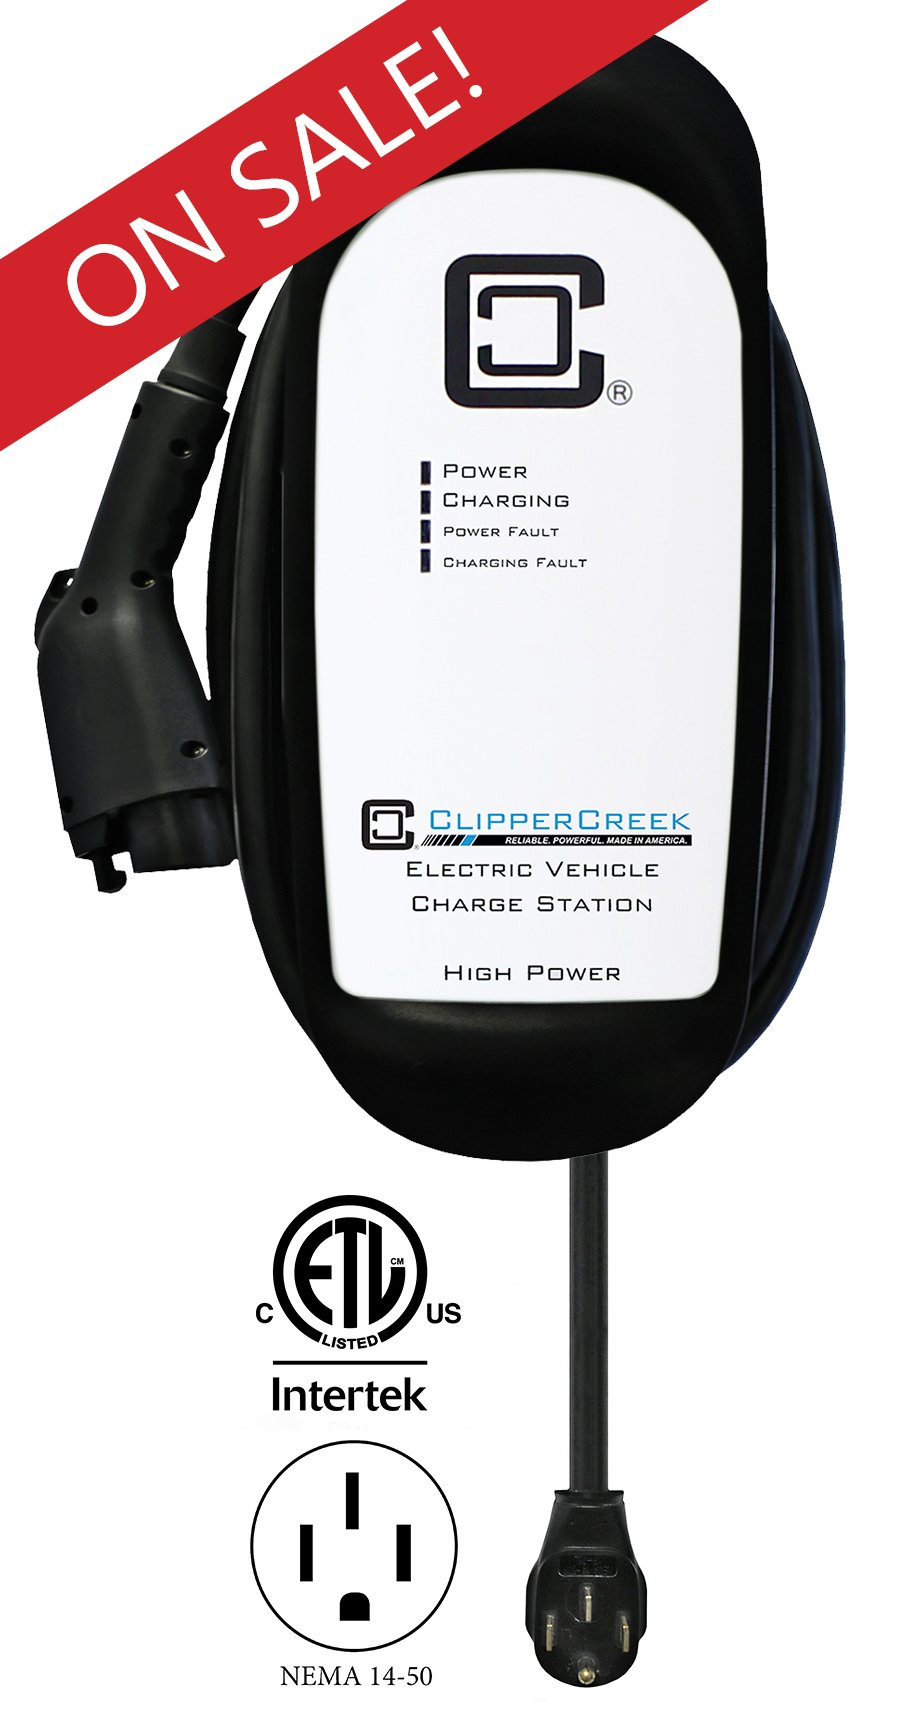 ClipperCreek HCS-50P, Plug-in 240V, 40A, EV Charging Station, 25 ft charging cable, NEMA 14-50, SAFETY CERTIFIED, Made in America. SAVE $200 NOW!